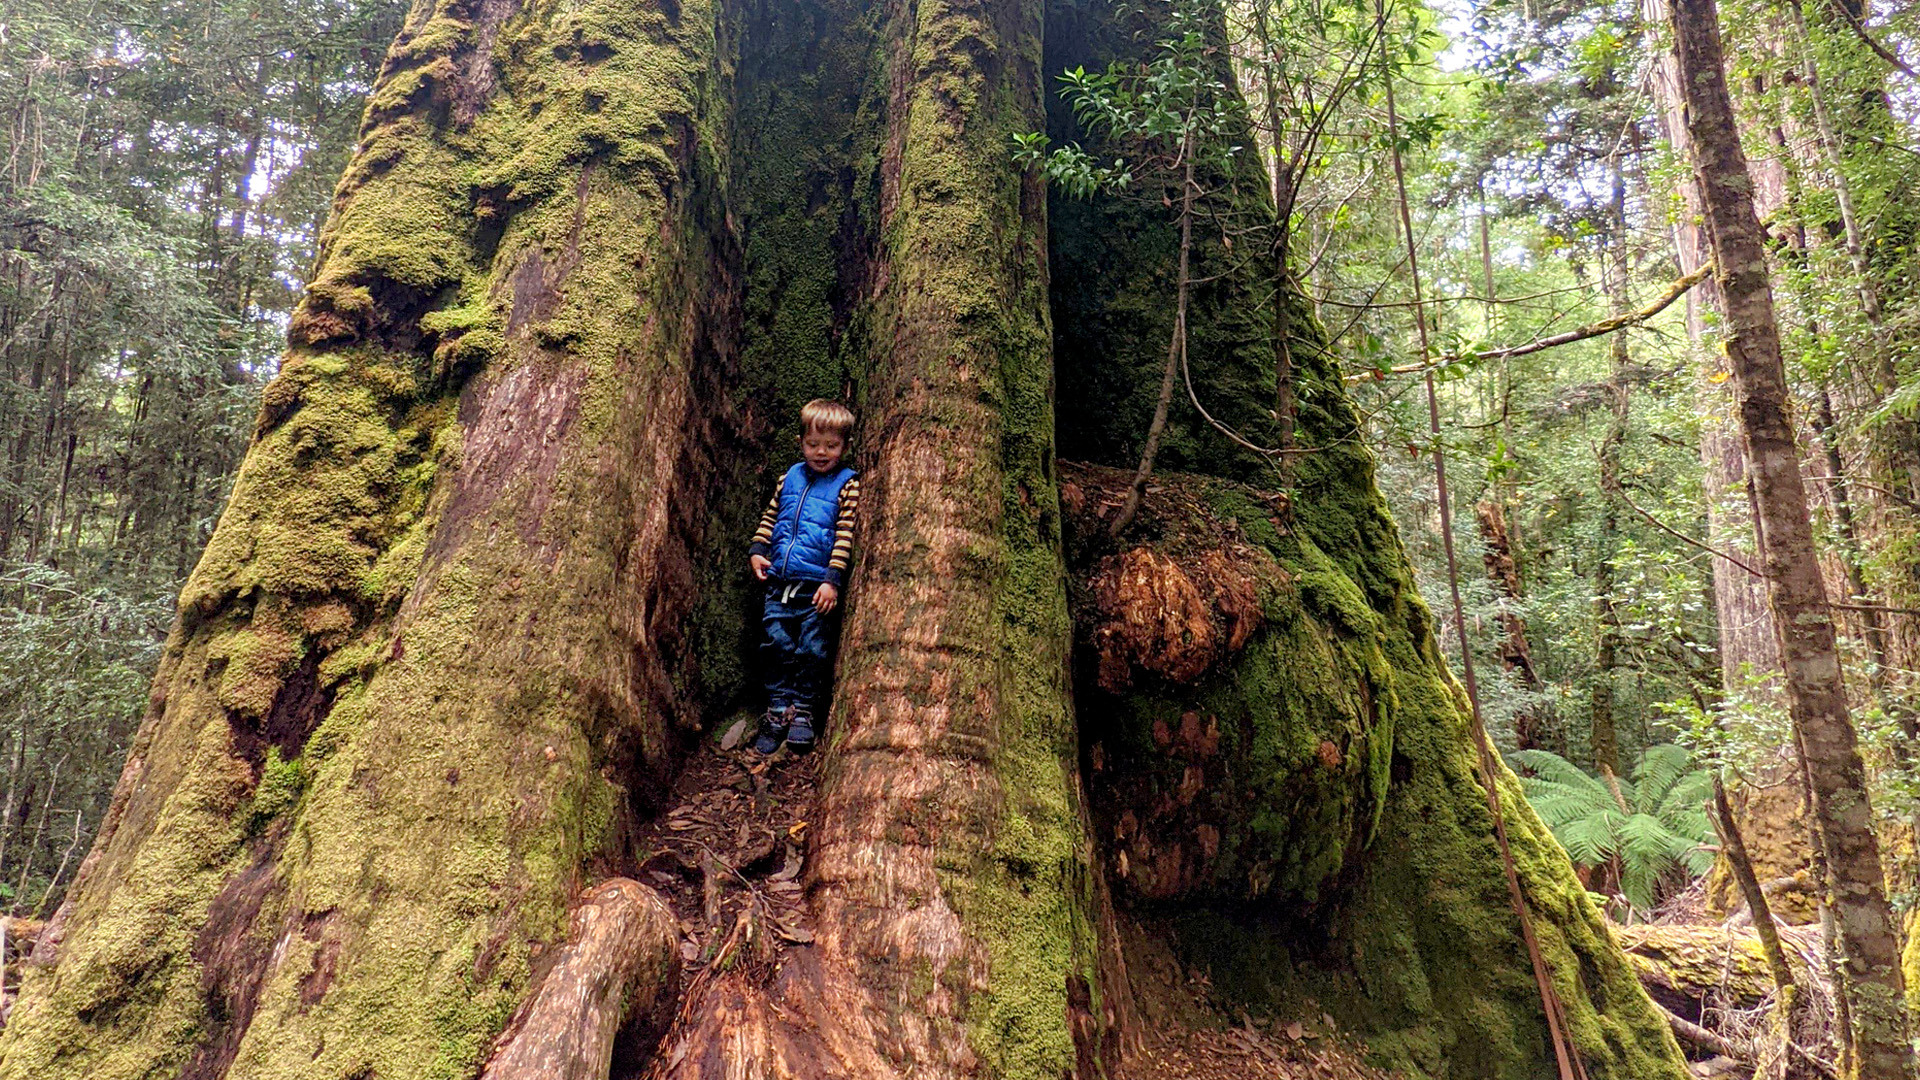 Protect the ancient forests for our future